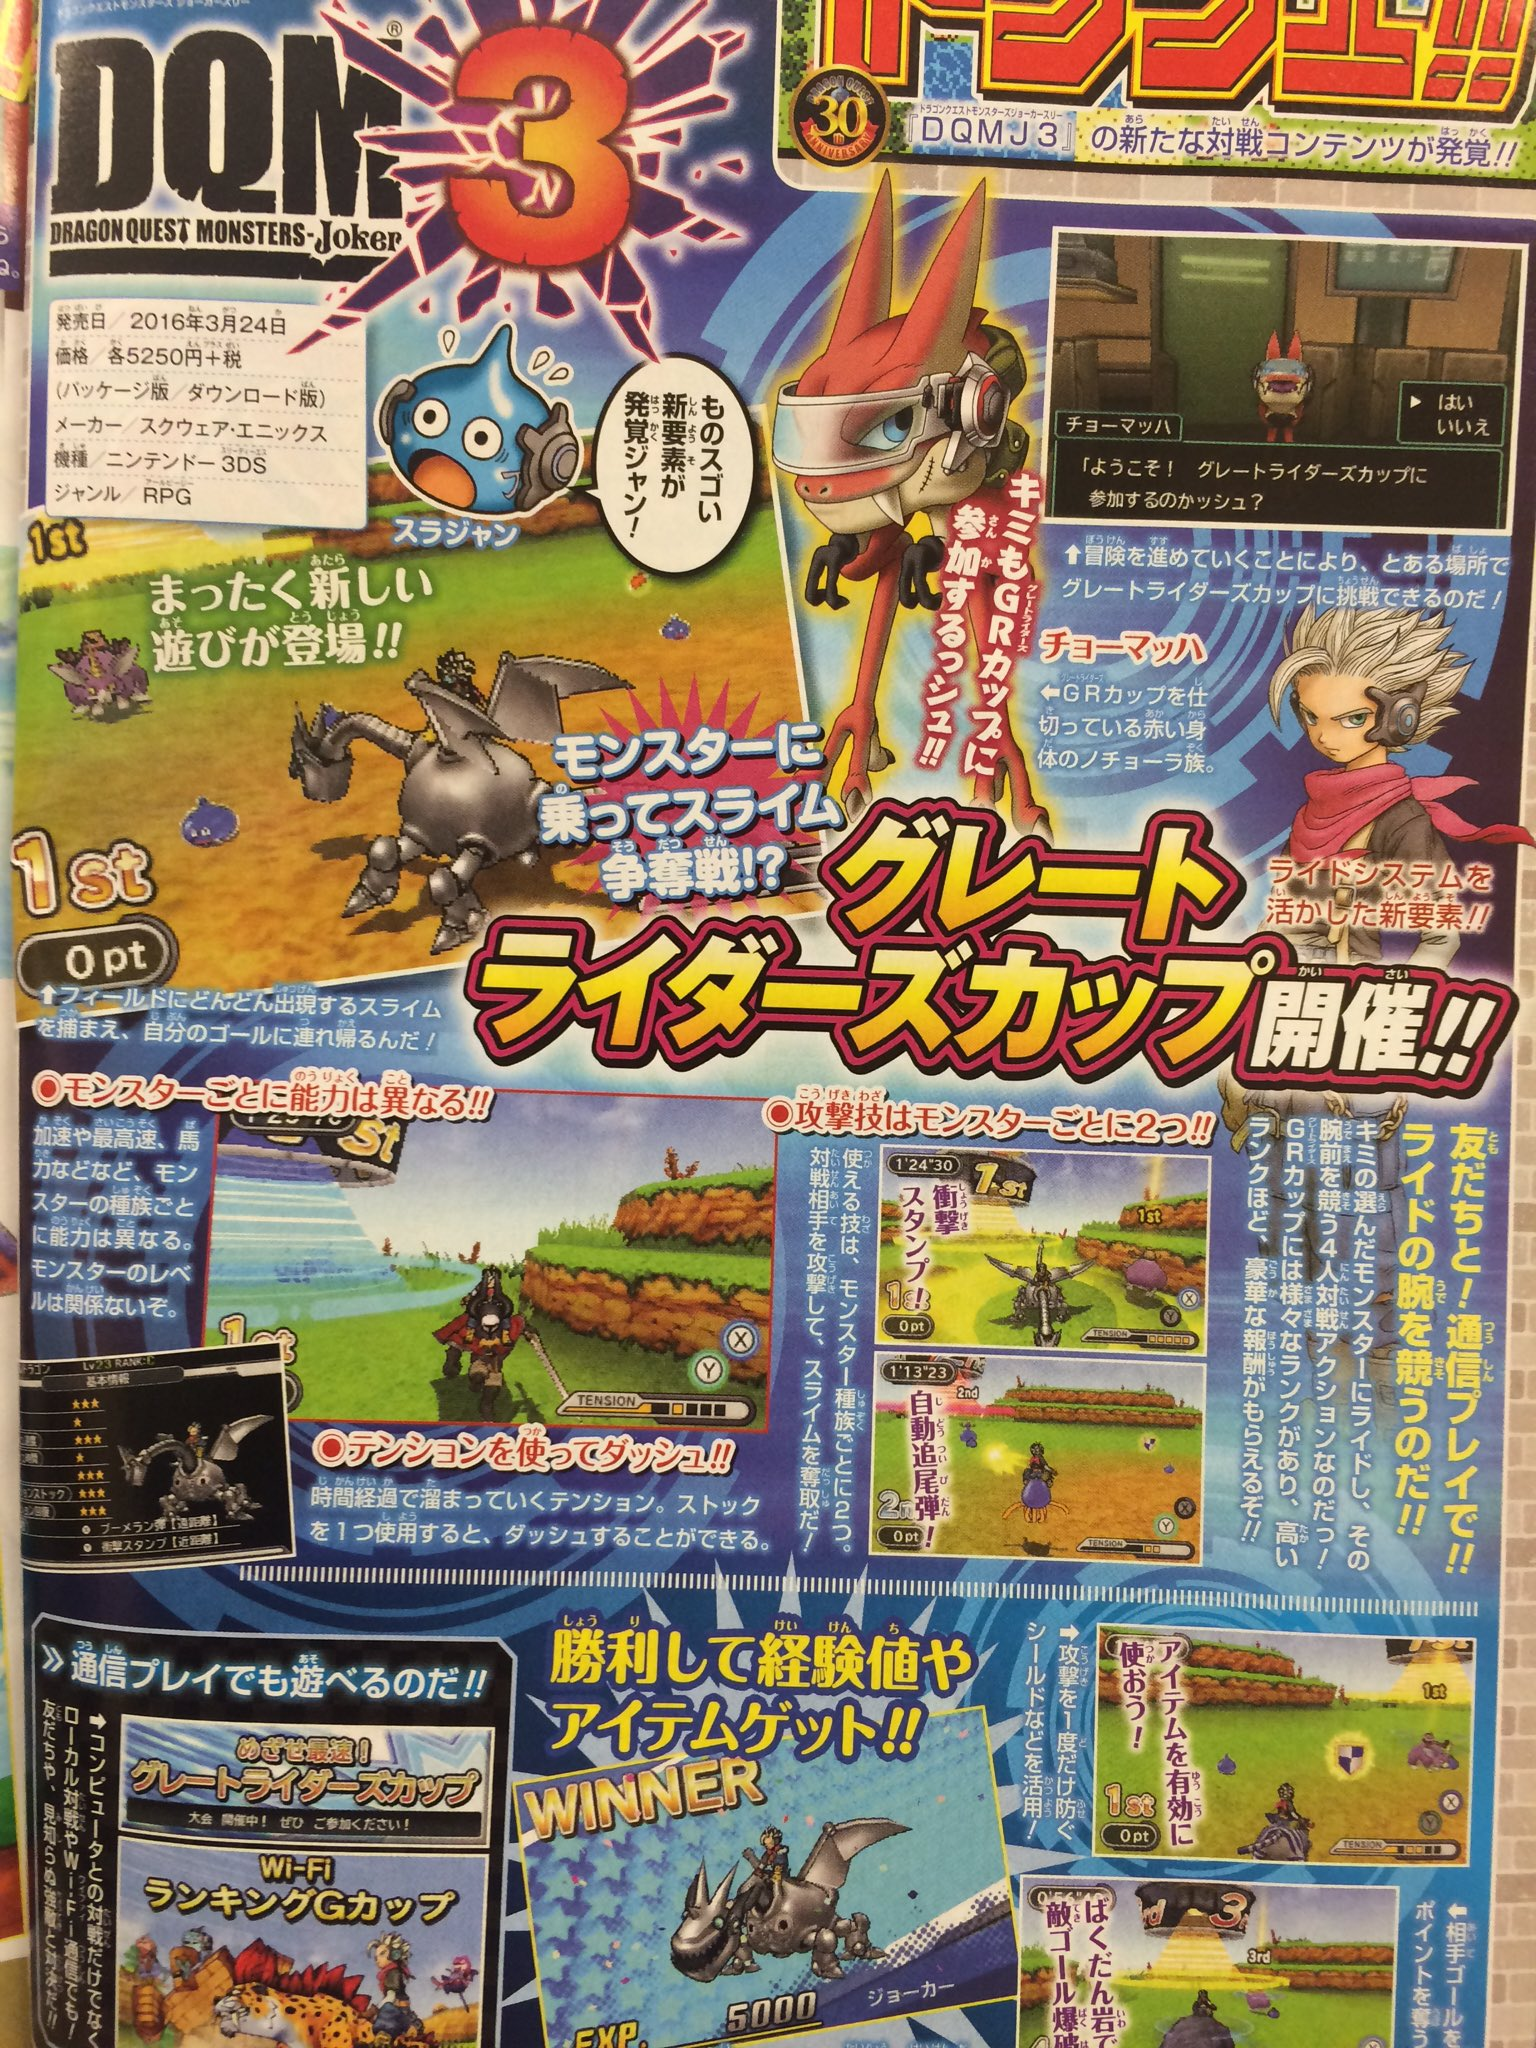 Dragon Quest Monsters: Joker 3 details cover the Great Riders Cup